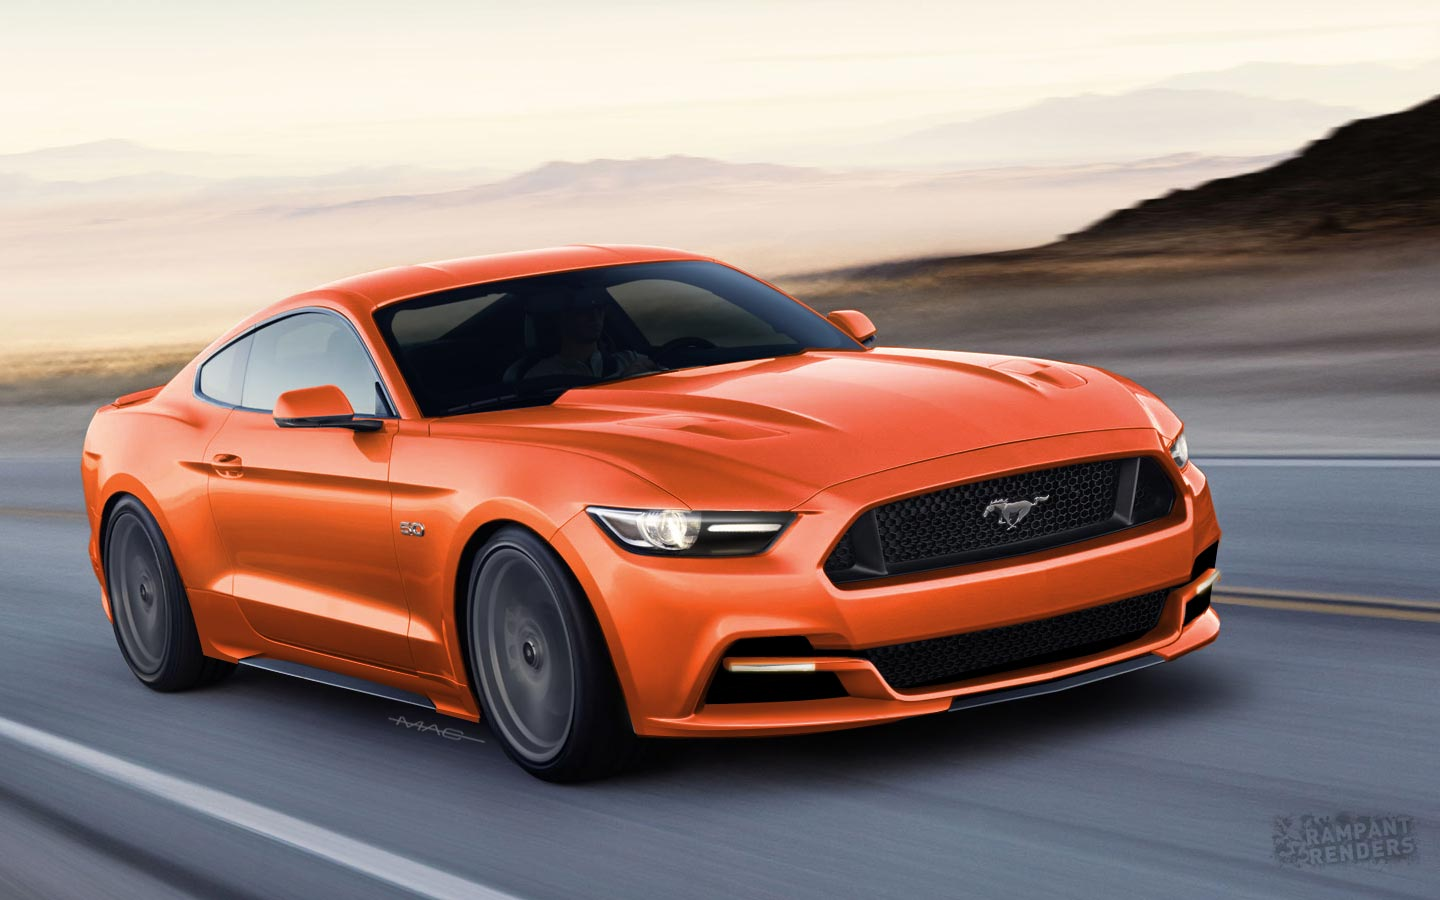 2015 Ford Mustang #3